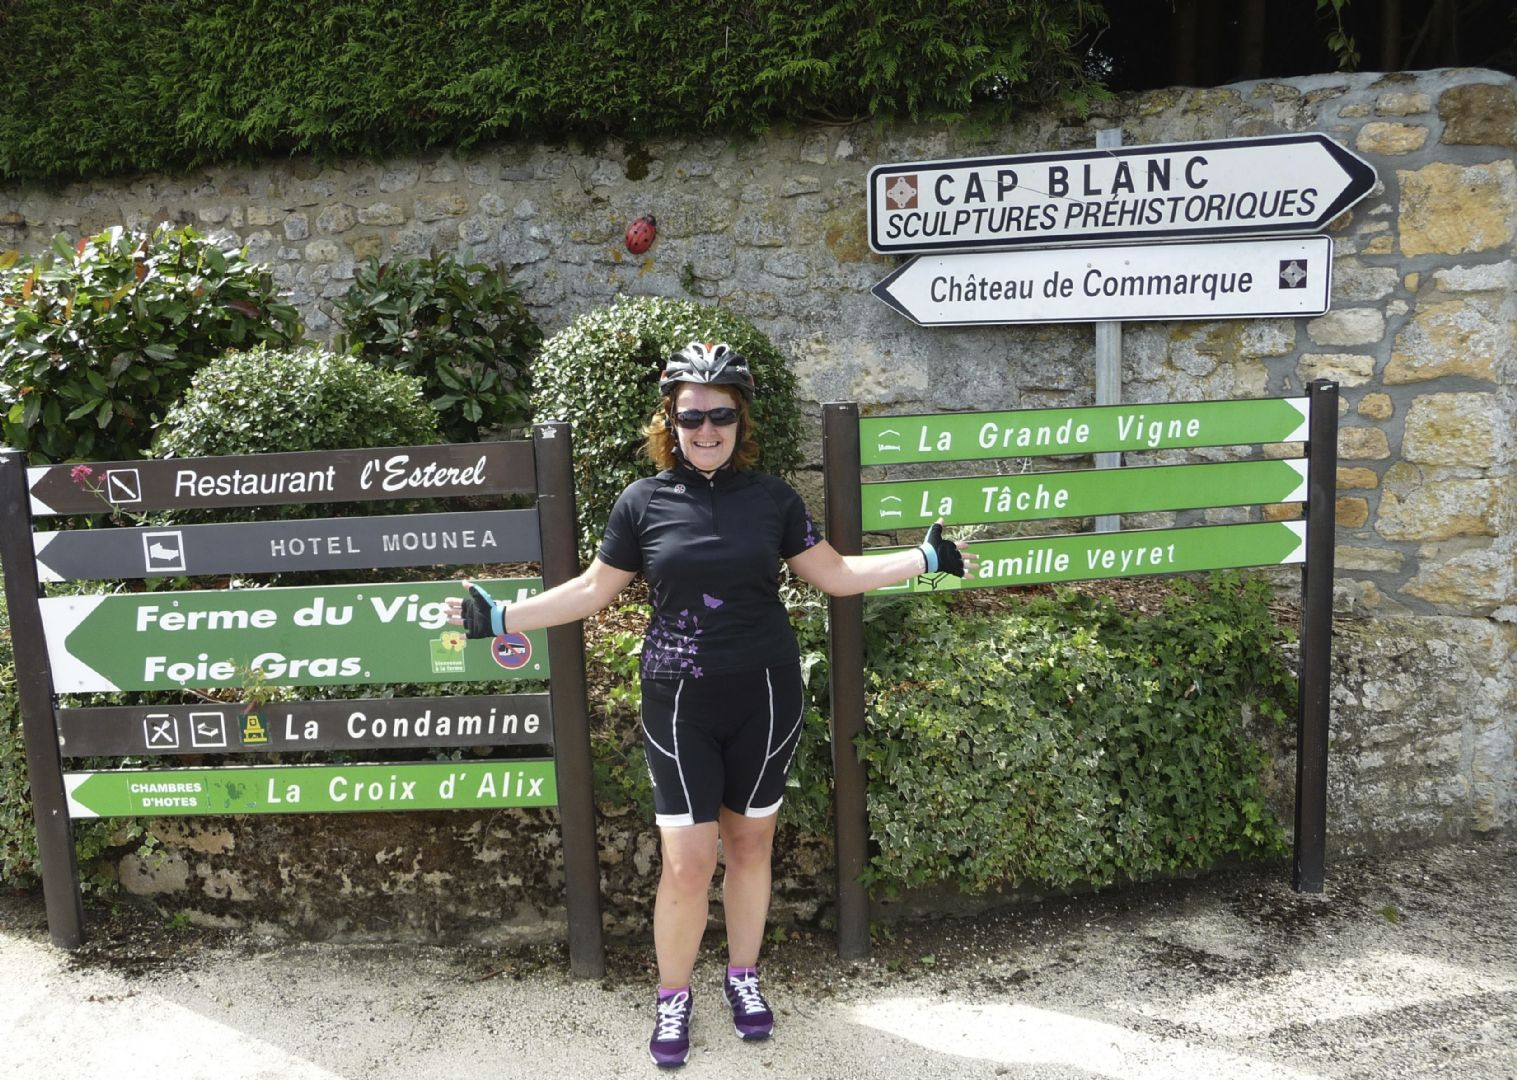 Dordognecycling.jpg - France - Dordogne Delights - Self-Guided Leisure Cycling Holiday - Leisure Cycling